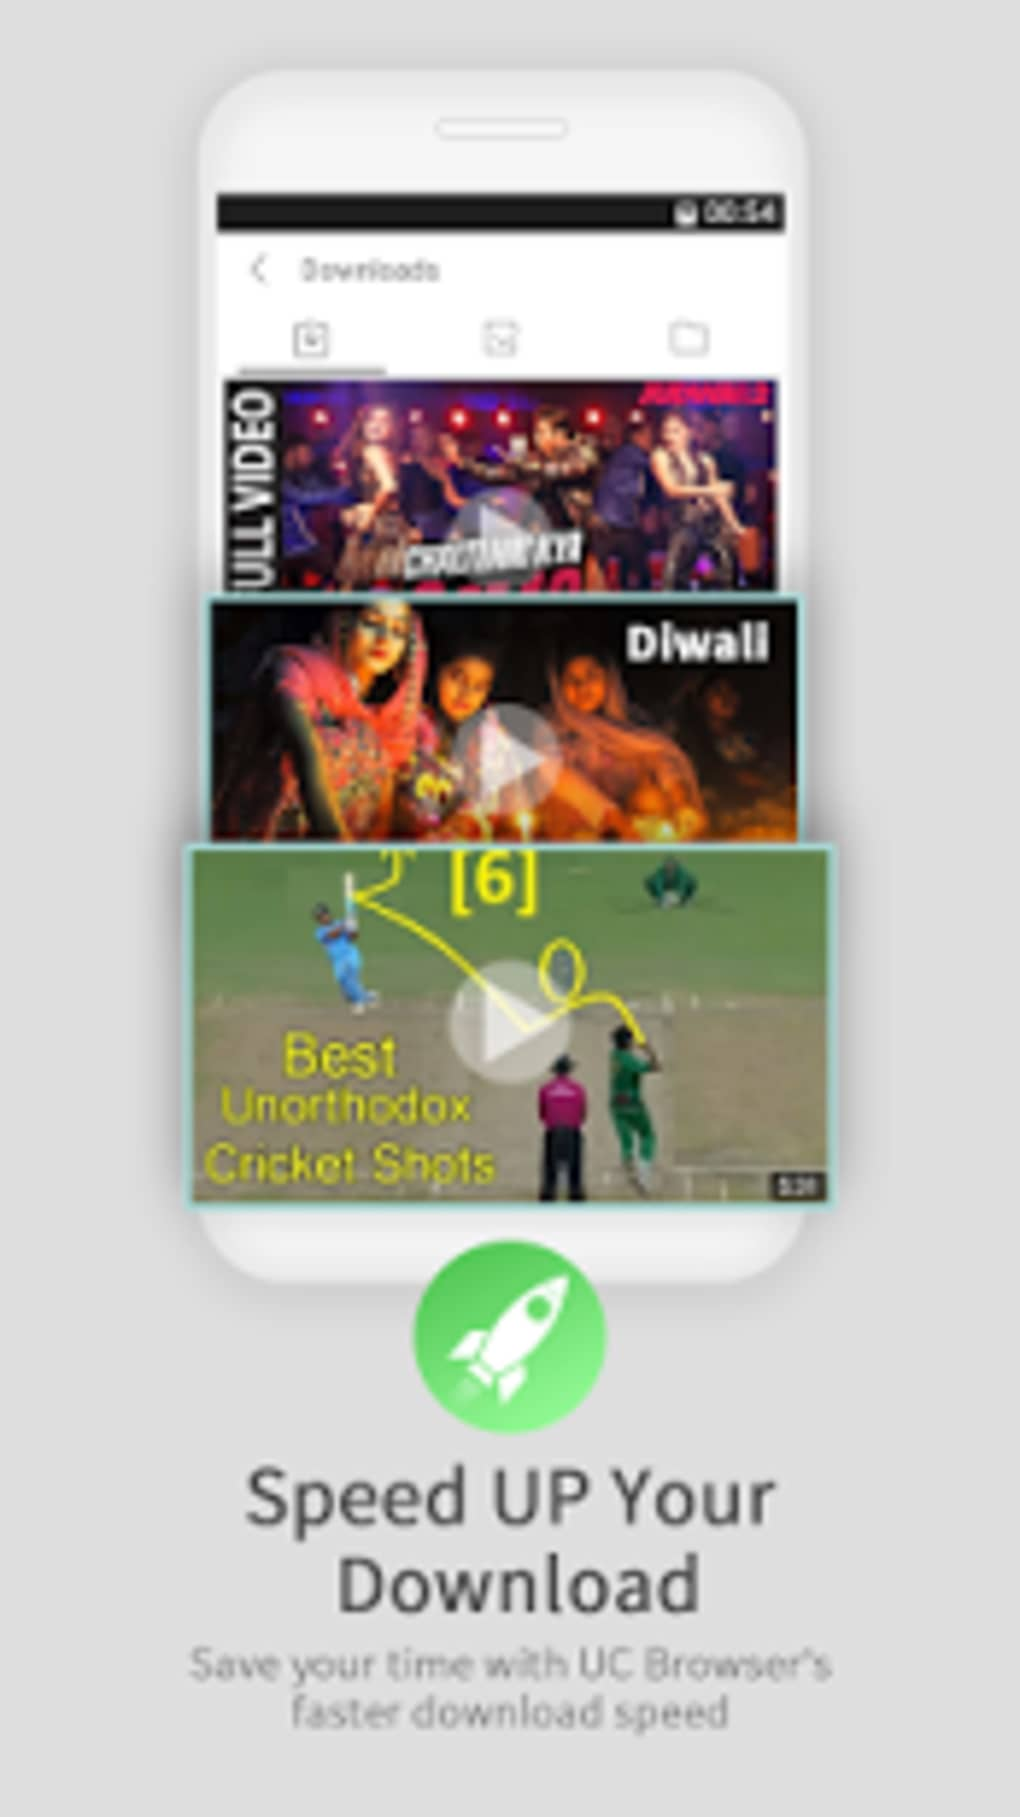 UC Browser Mini for Android - Download